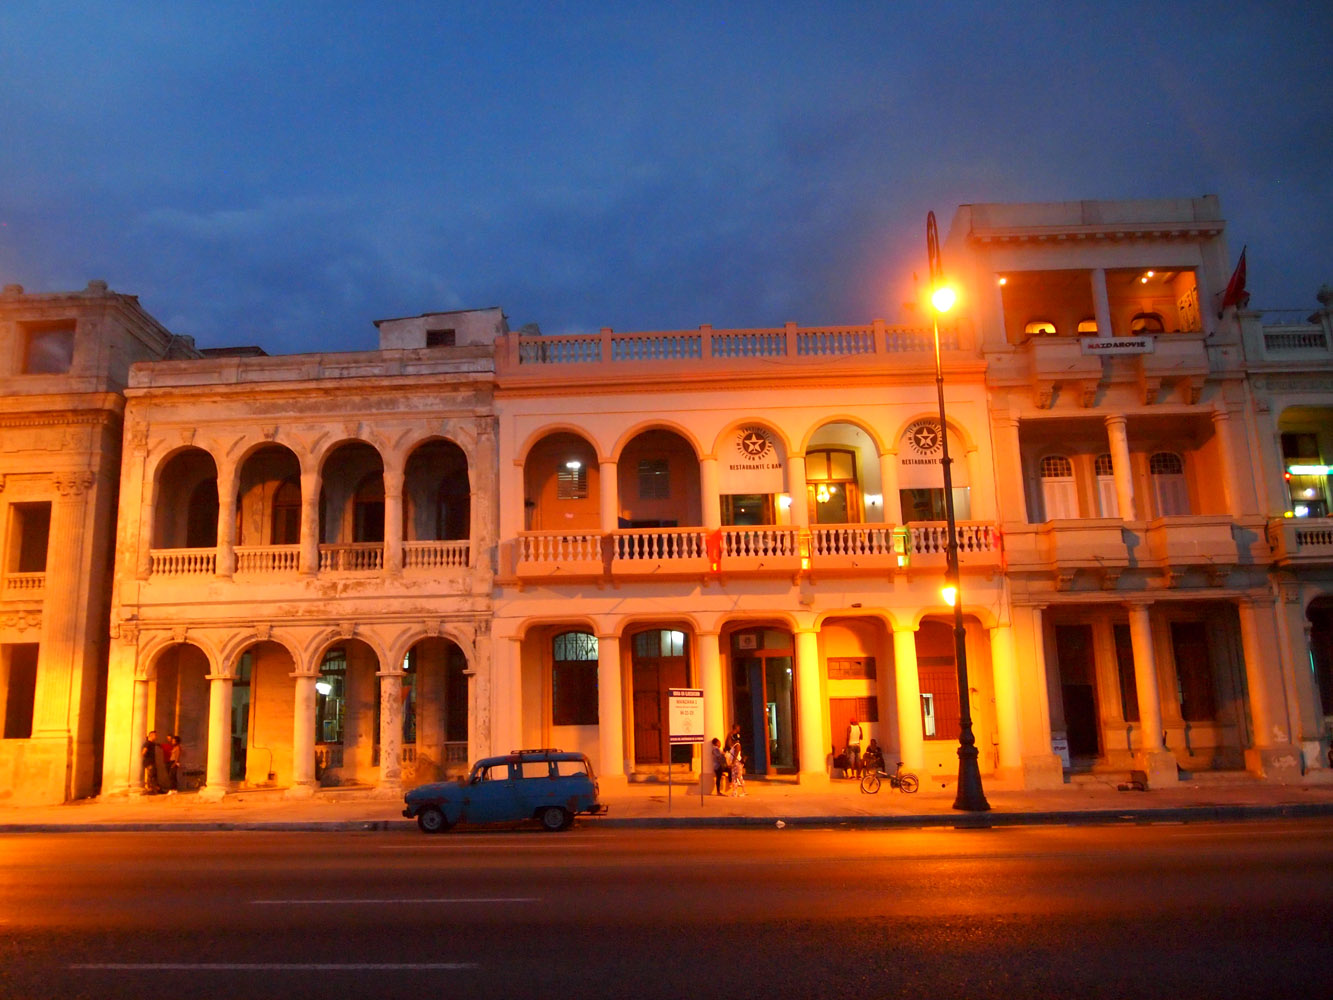 Cuba-Havana-Malecon-Evening-Buildings.jpg